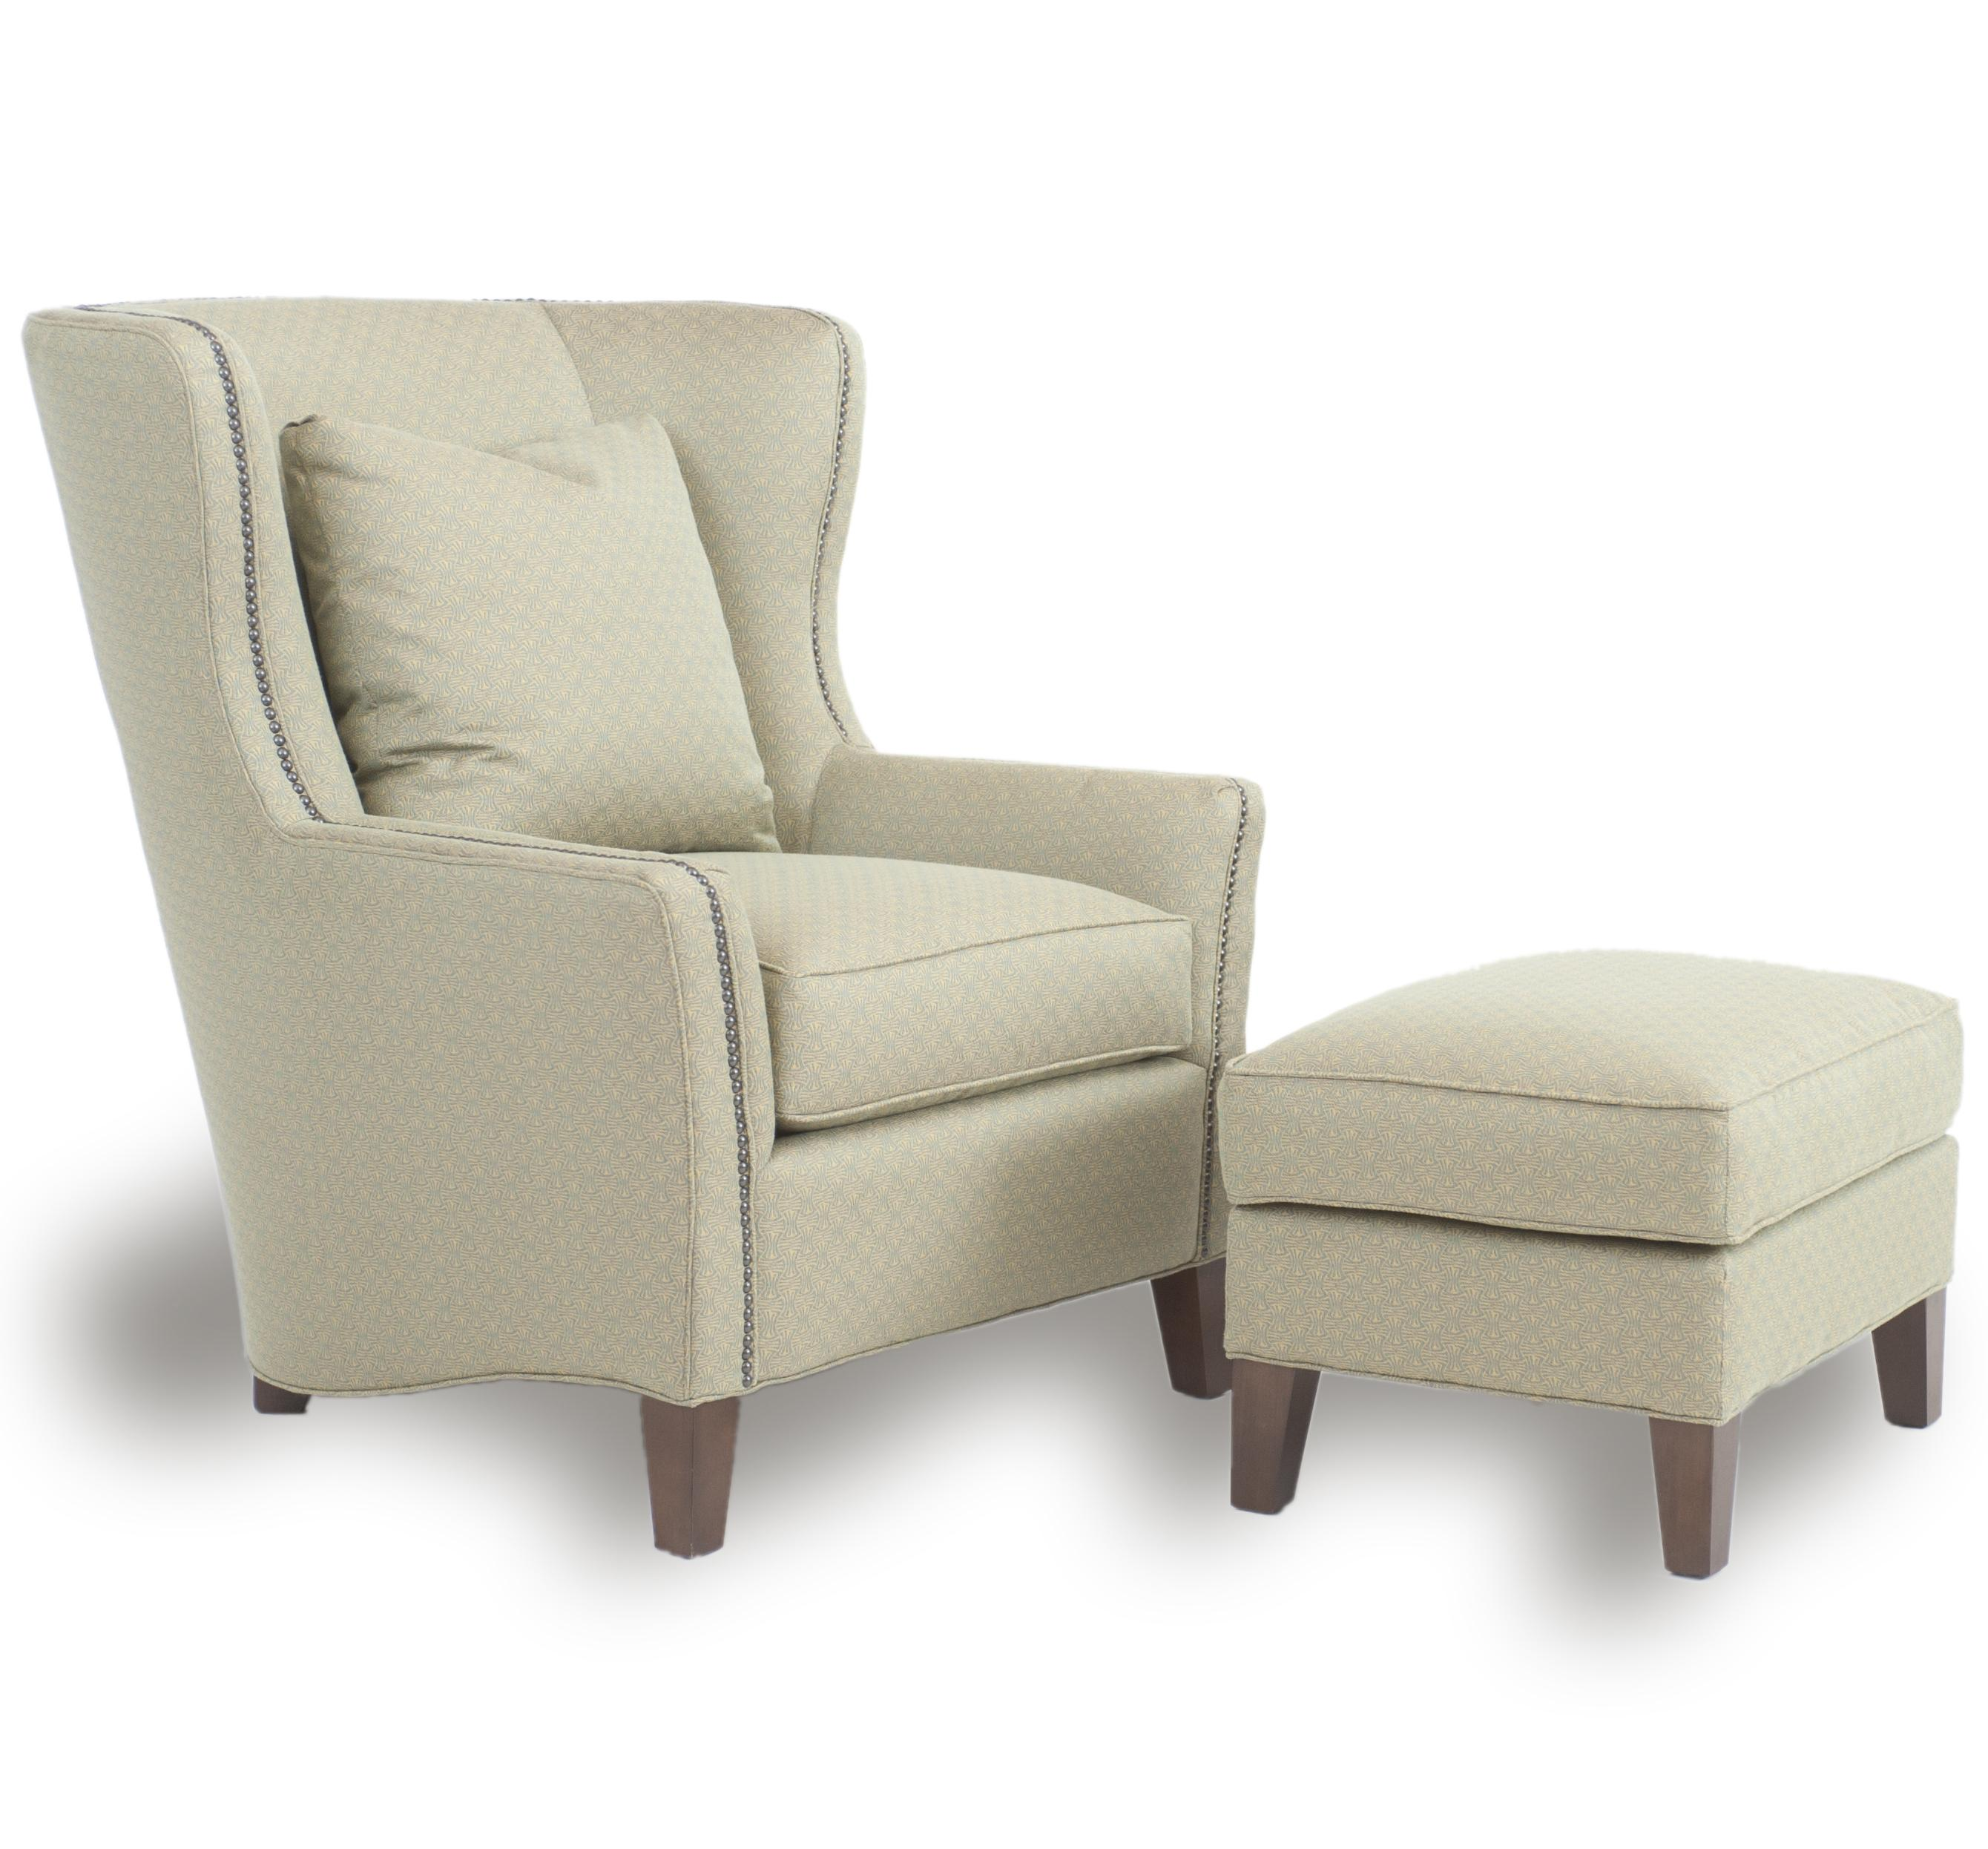 accent chairs with ottoman thermarest trekker chair 20 smith brothers and ottomans sb 825 40